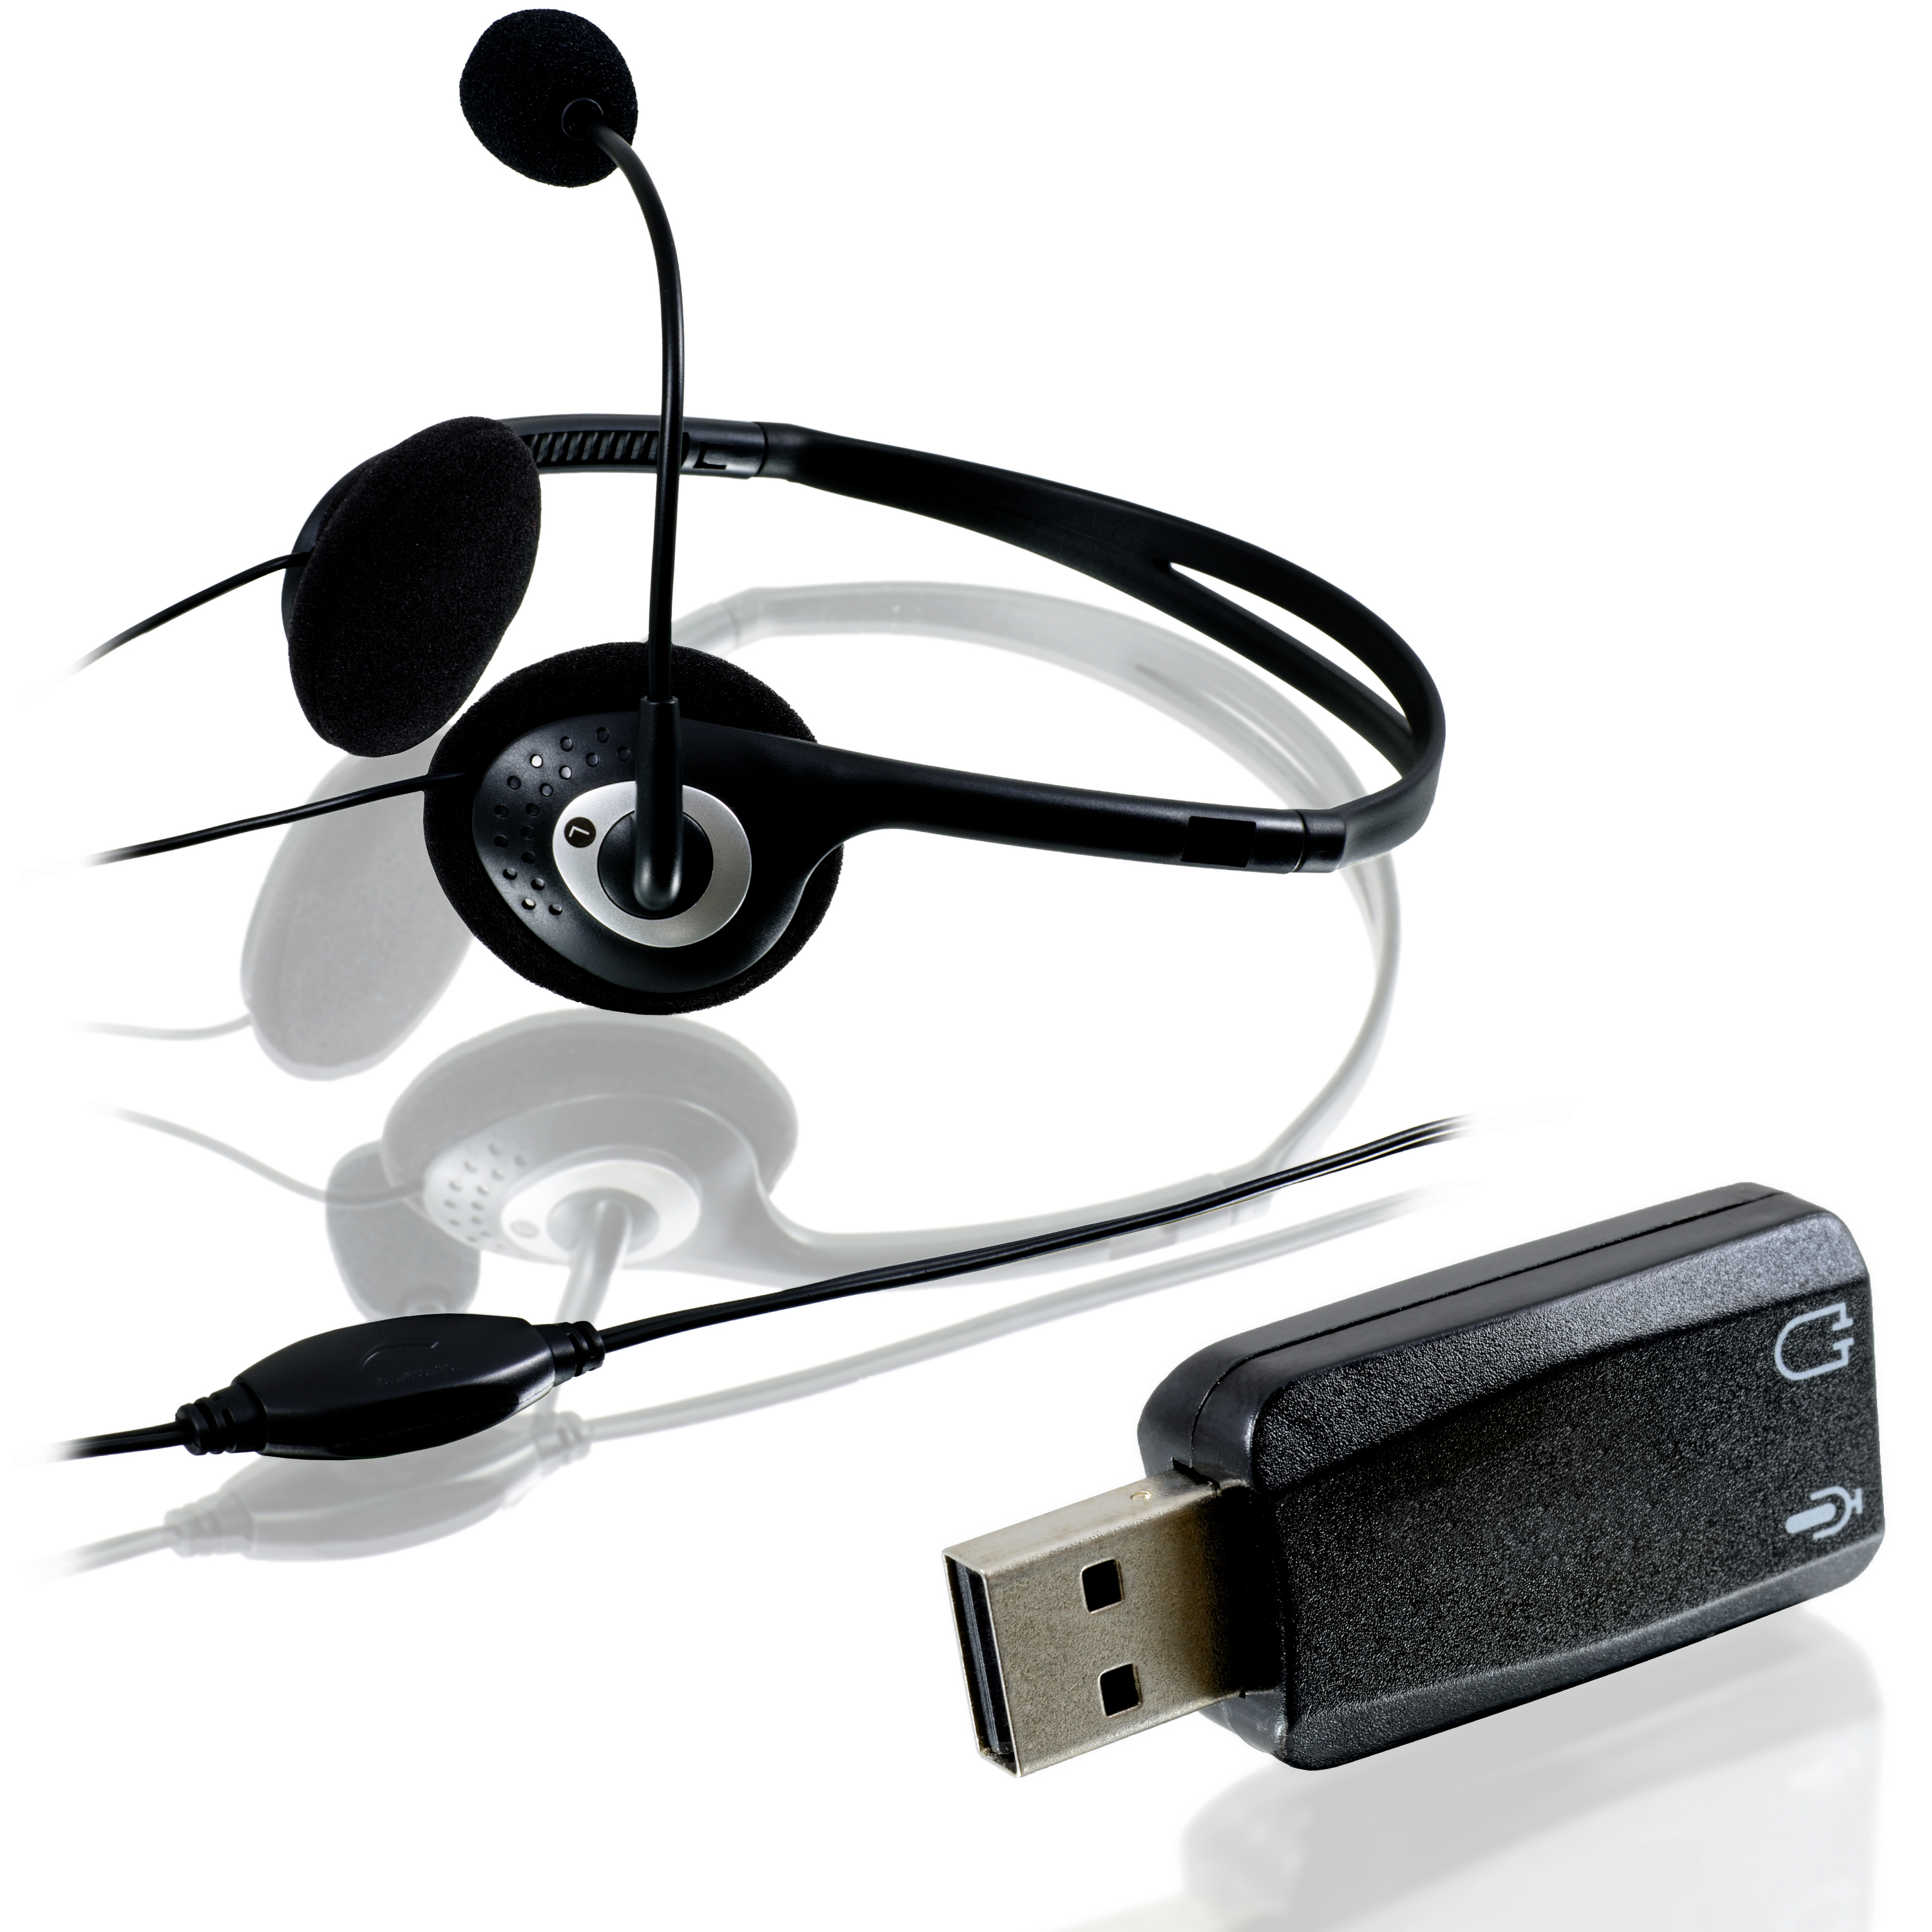 USB-Headset-Bundle-externe-Virtual-5-1-USB-Soundkarte-Headset-m-Mikrofon